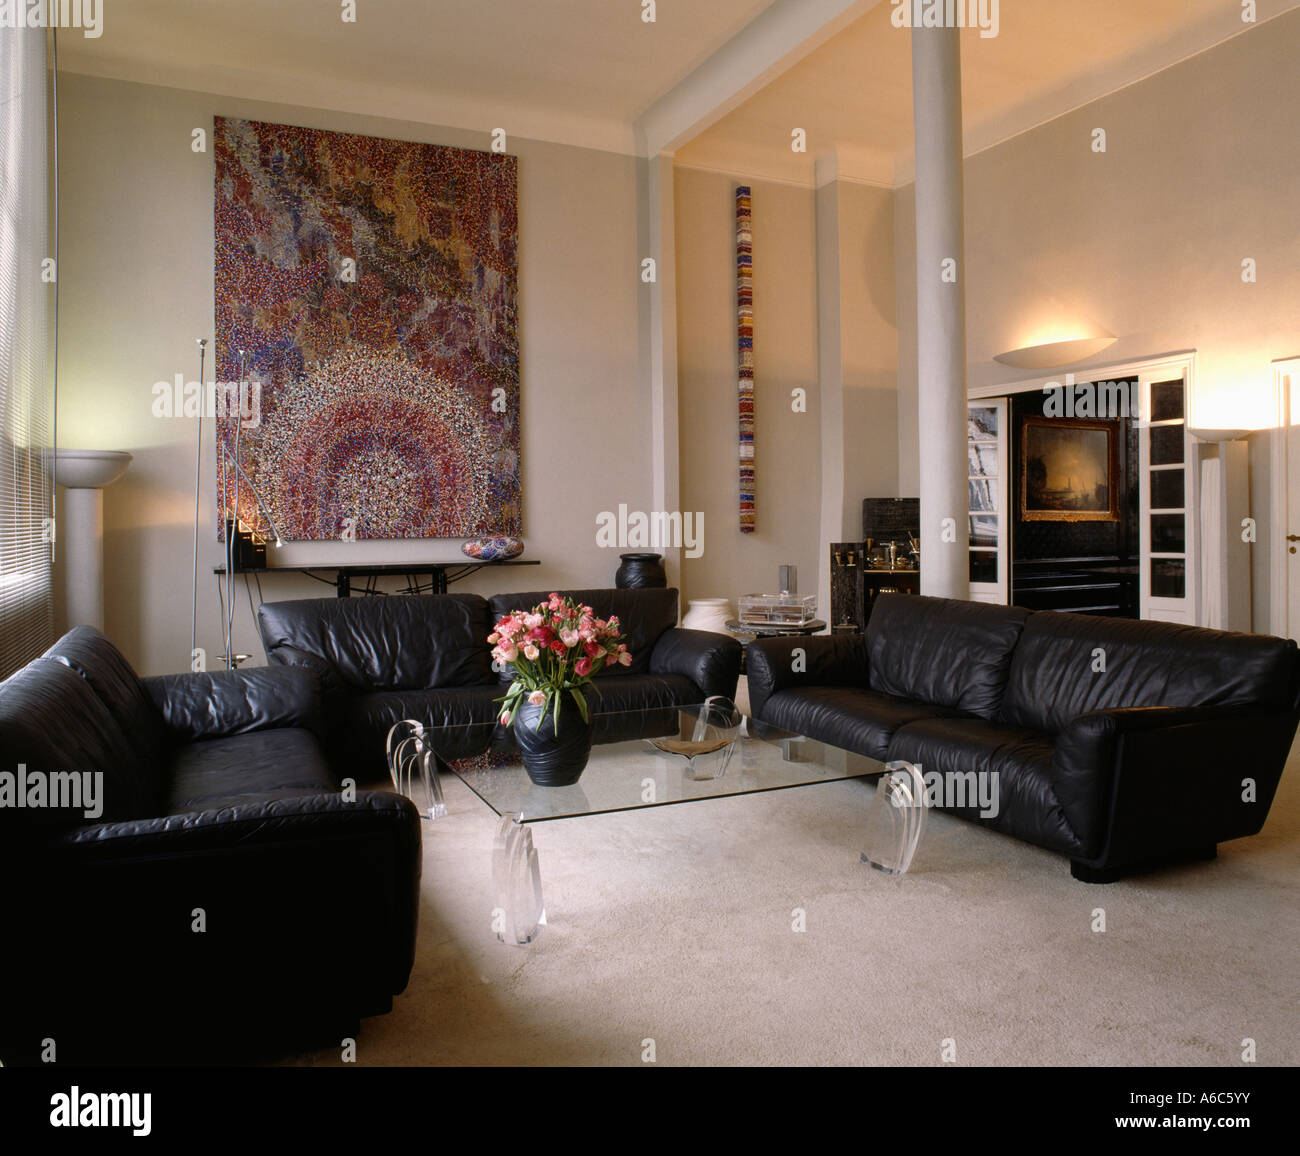 Awesome Large Painting On Wall In Modern Sittingroom With Black Ocoug Best Dining Table And Chair Ideas Images Ocougorg